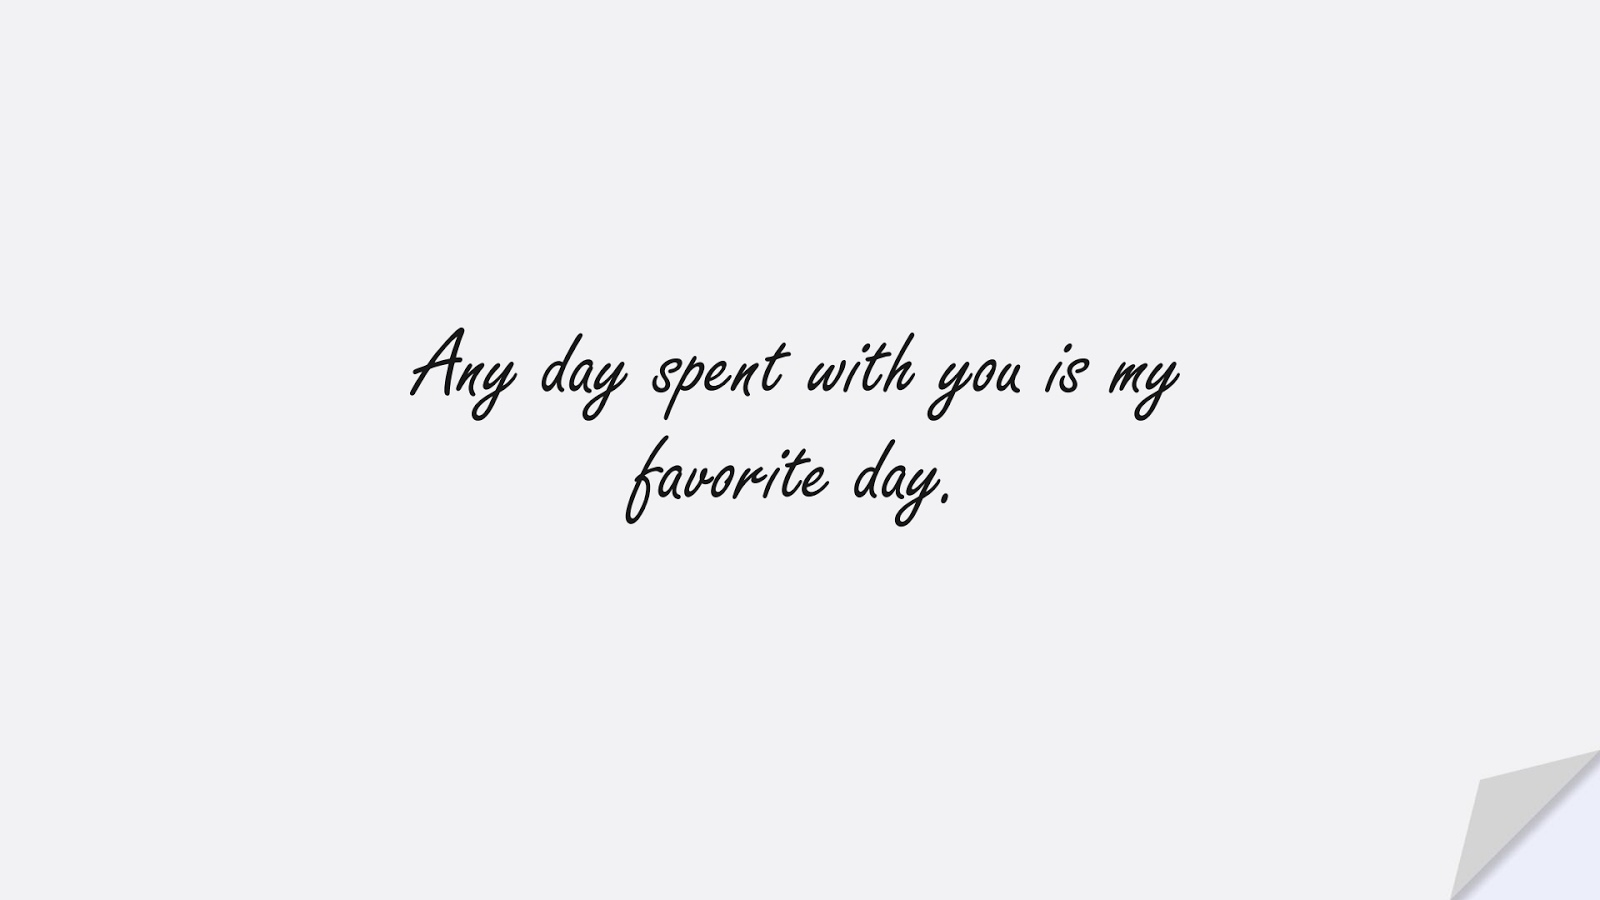 Any day spent with you is my favorite day.FALSE